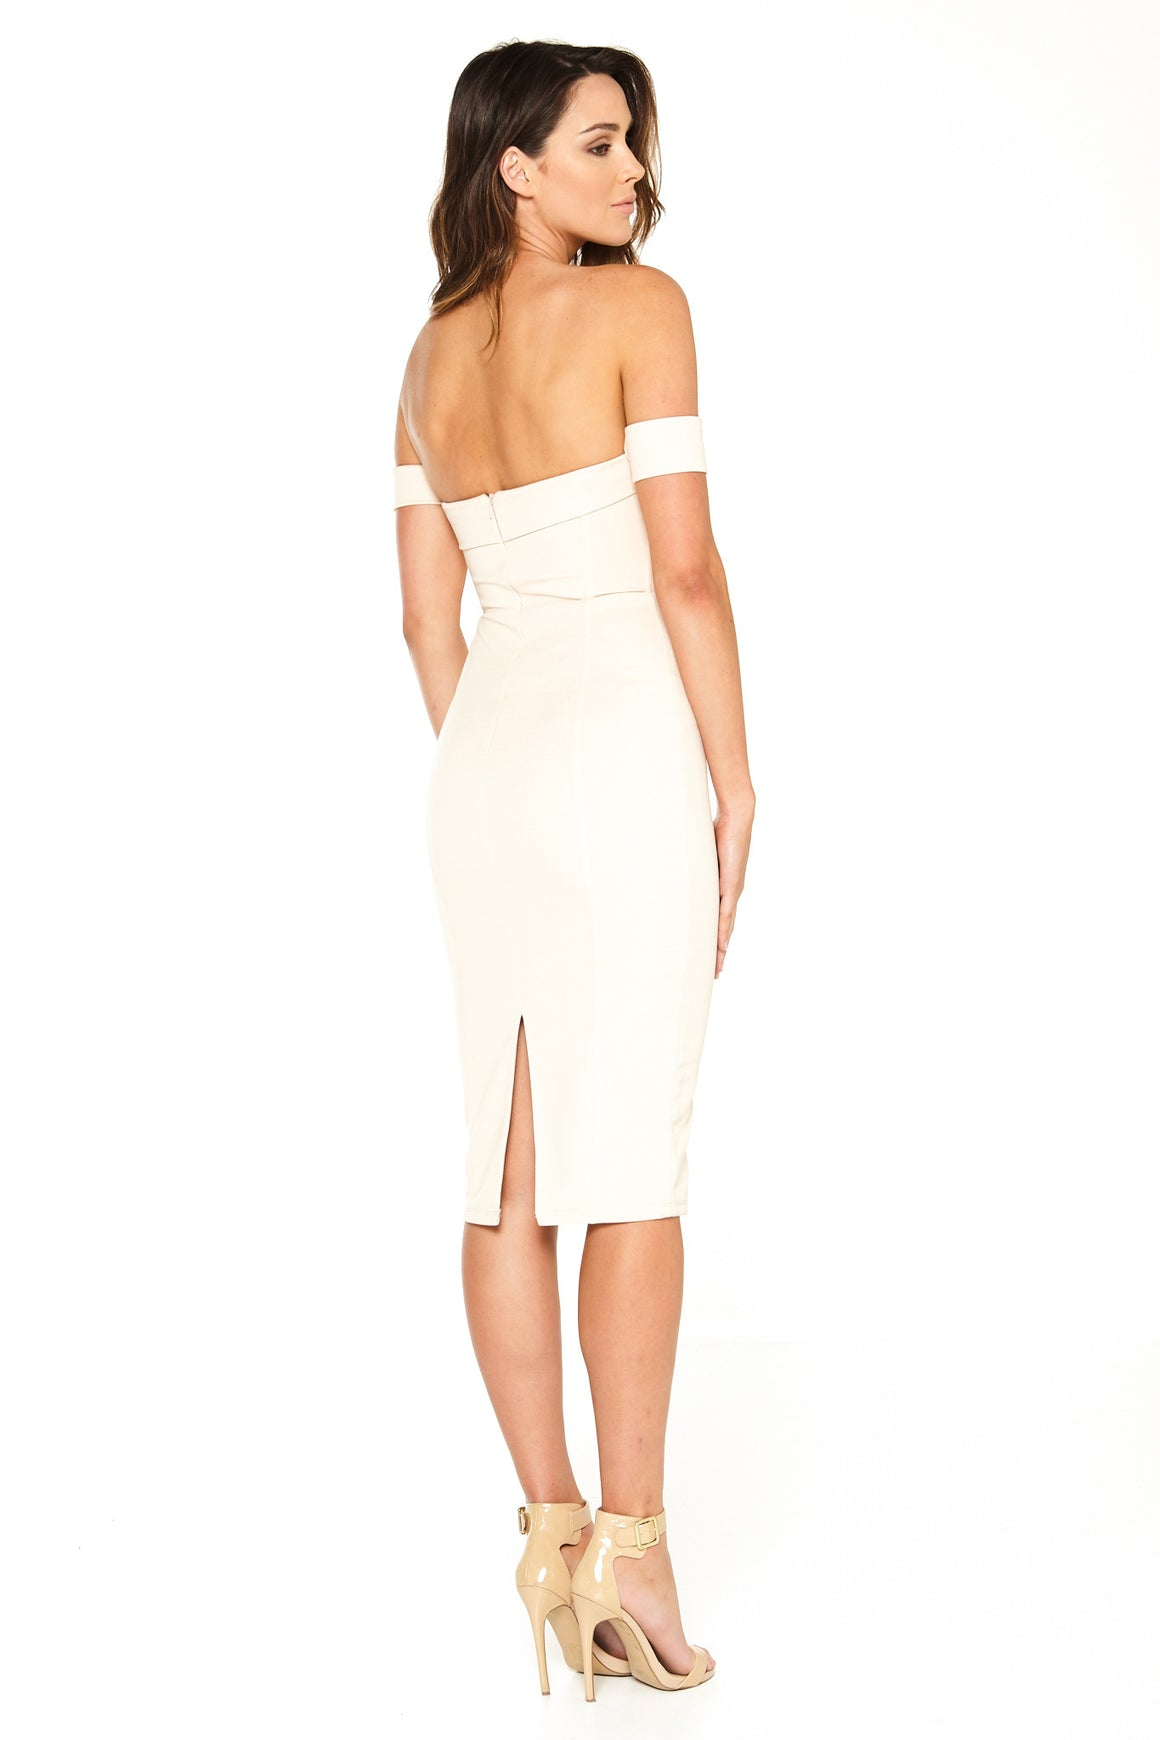 Cynthia Off-Shoulder Dress - Nude